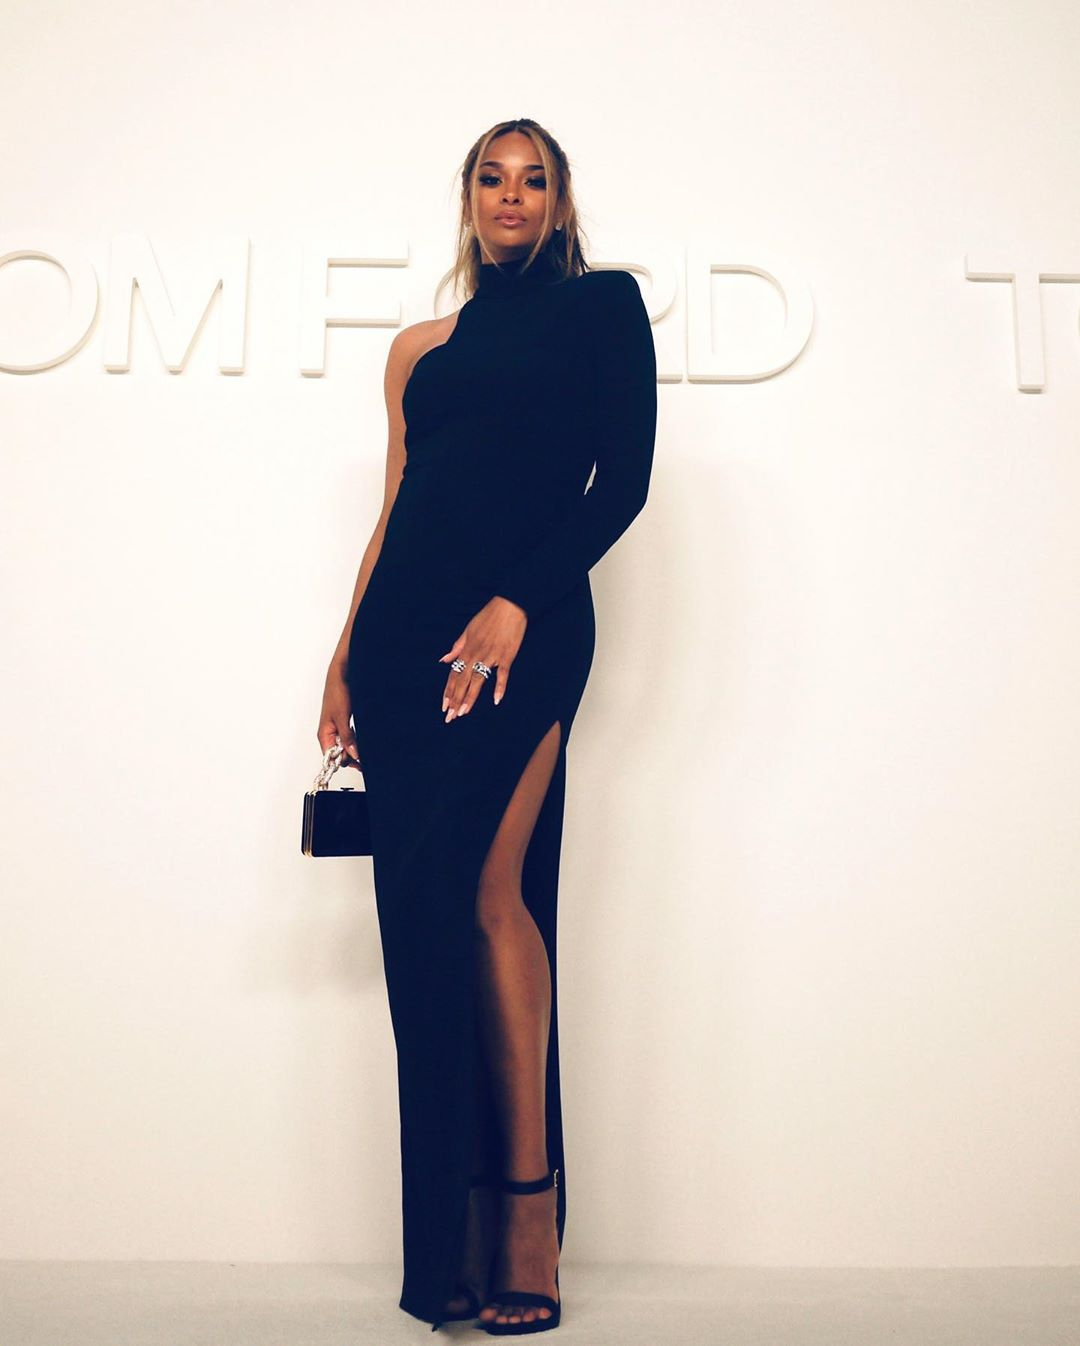 Pregnant Ciara documents husband Russell Wilson cutting her out of dress